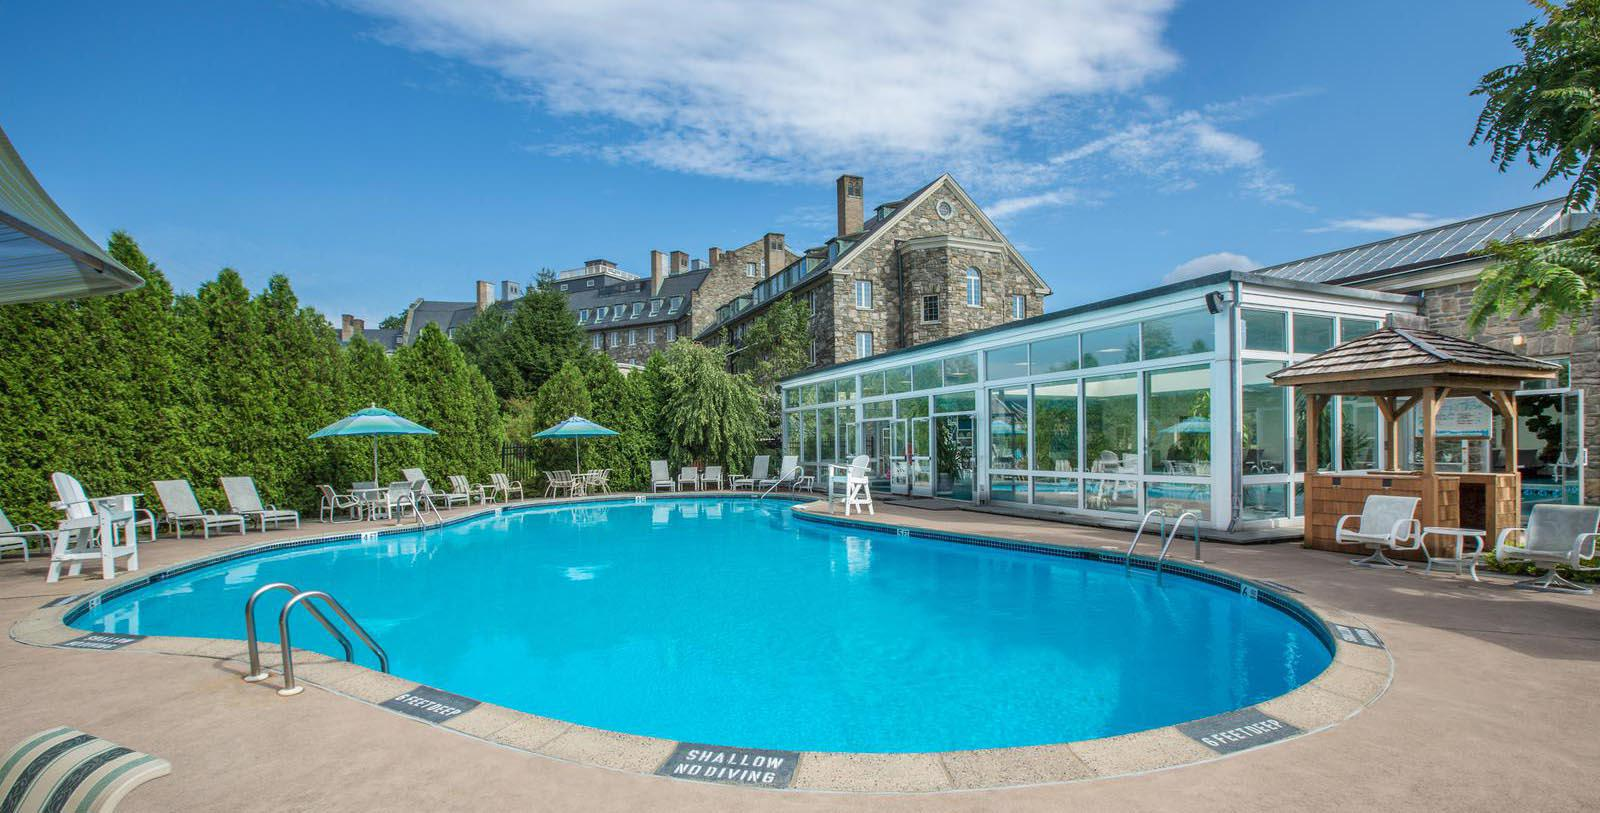 Image of Pool Skytop Lodge, 1928, Member of Historic Hotels of America, in Skytop, Pennsylvania, Explore